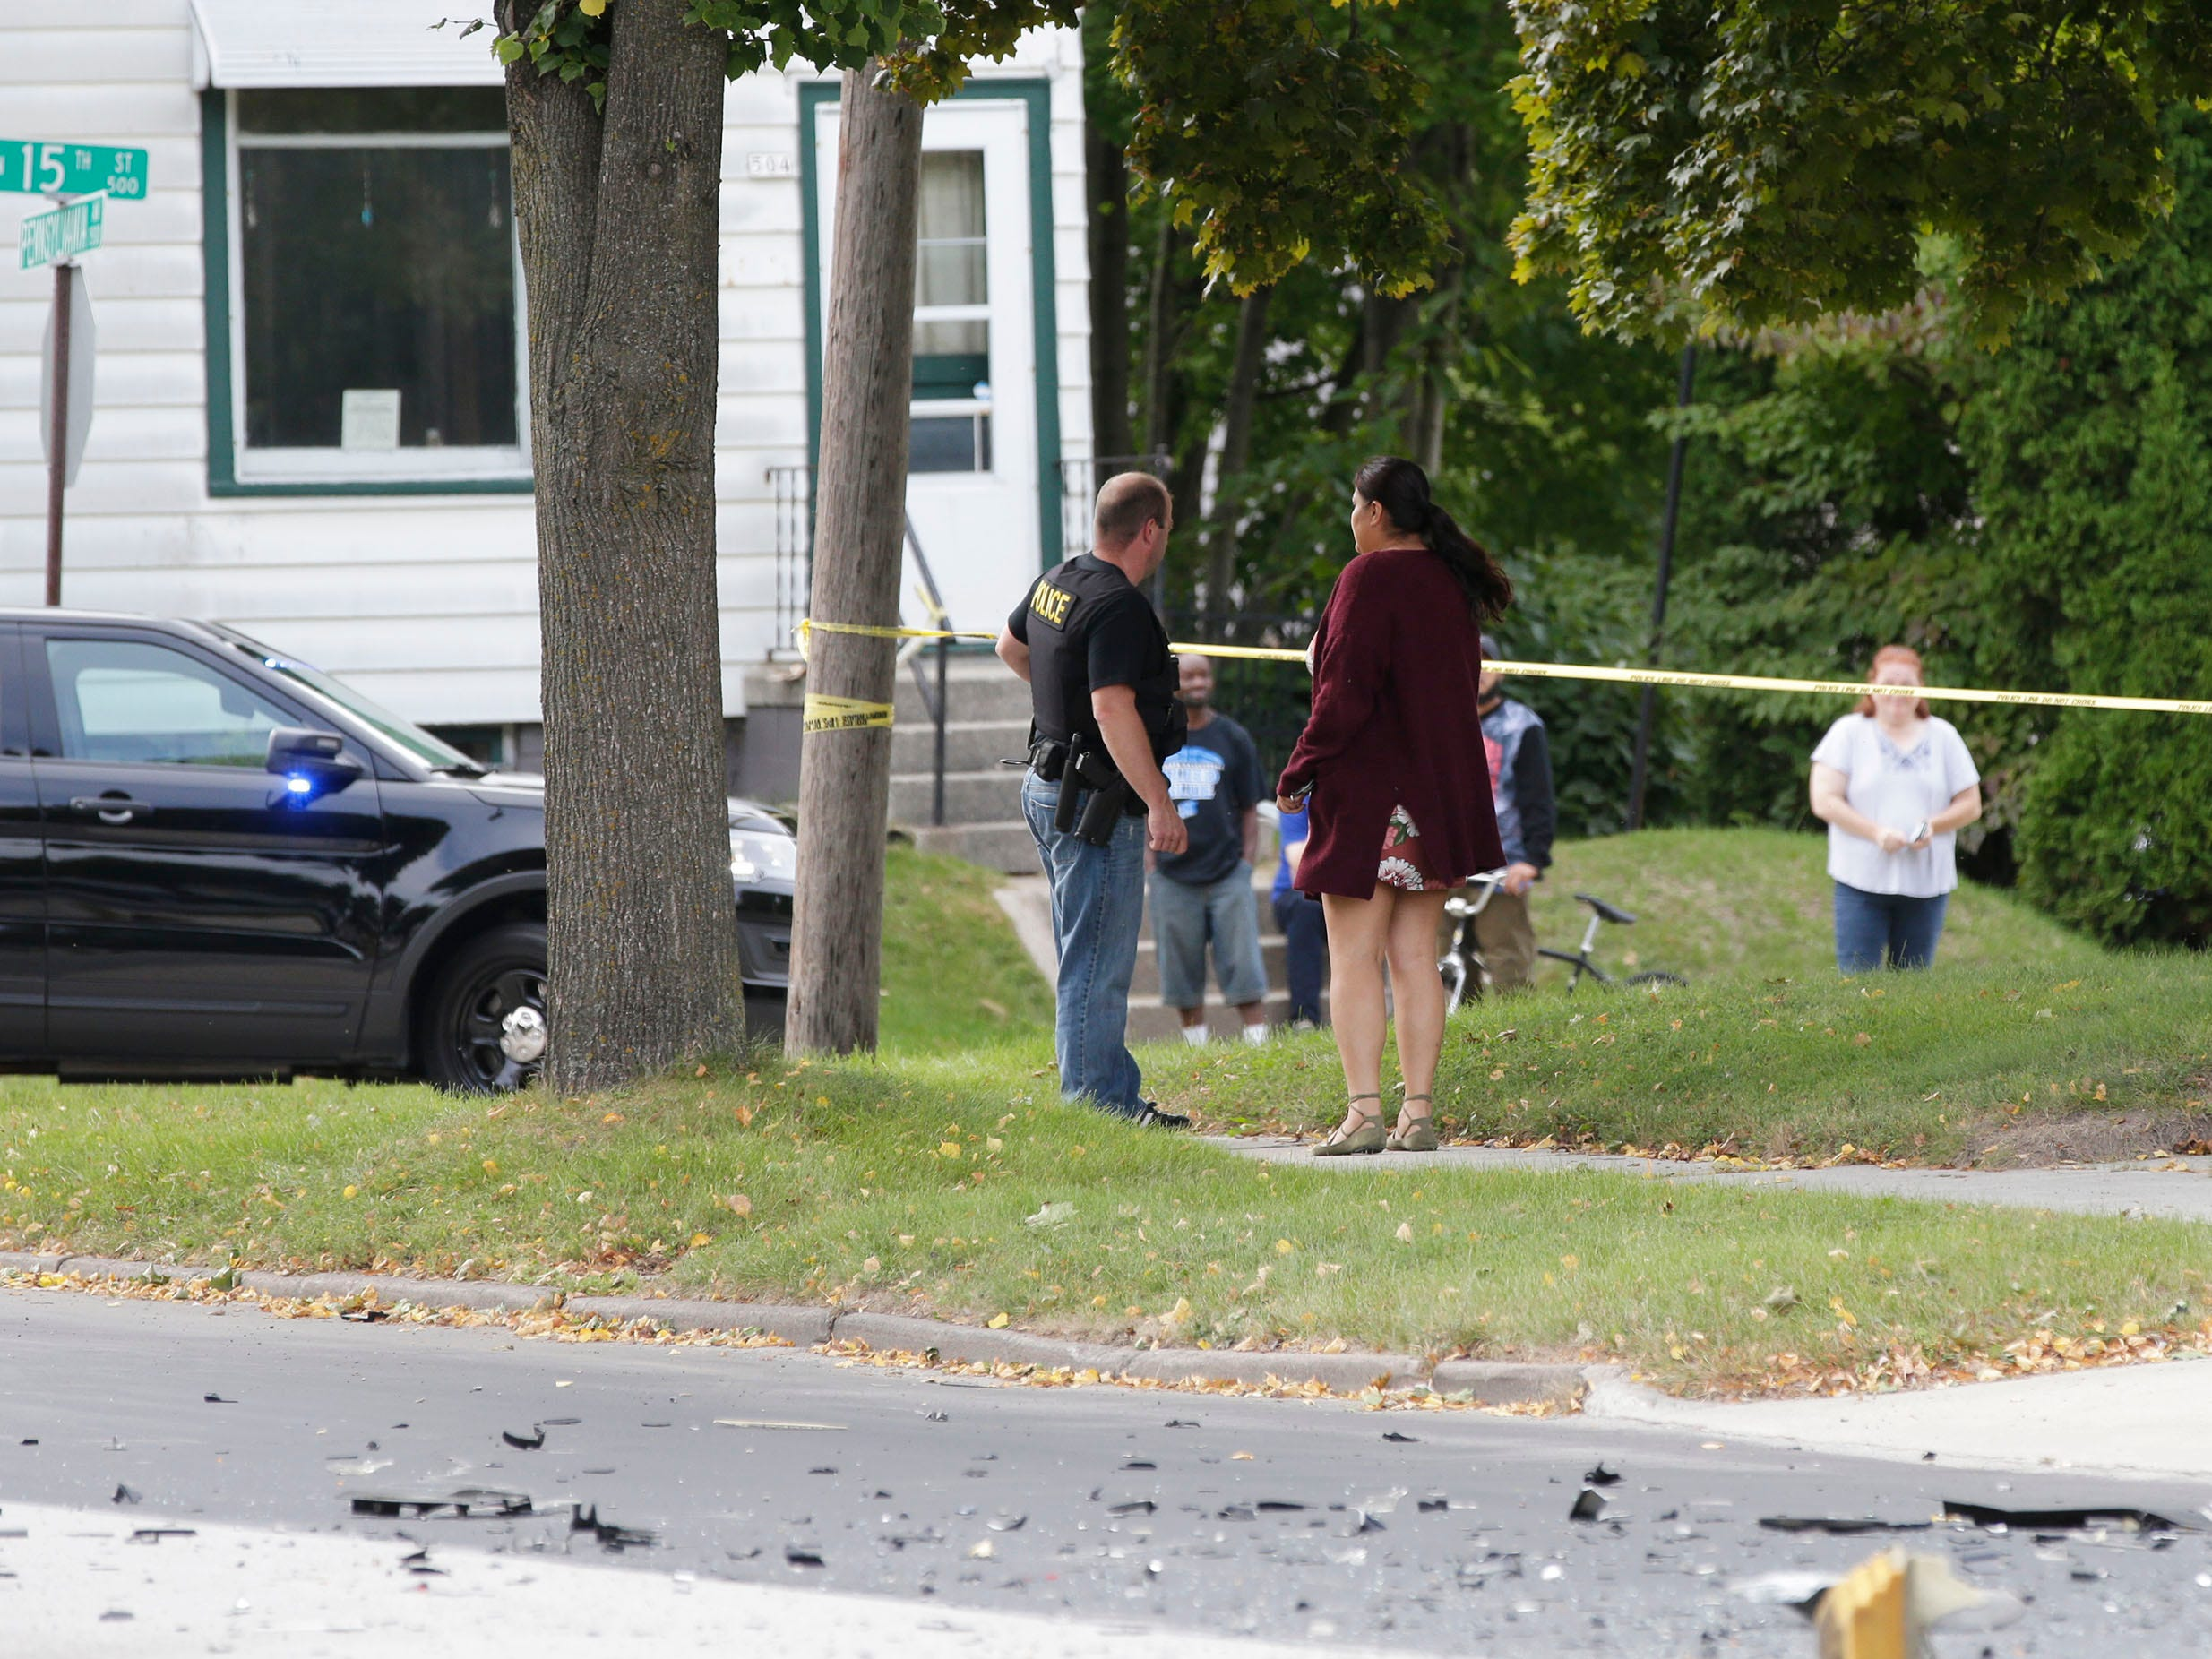 Sheboygan police investigate the scene of a 2-car crash on Pennsylvania Avenue between 14th and 15th streets, Tuesday, September 18, 2018, in Sheboygan, Wis. A third parked car was also struck. Two people died as a result of the crash.